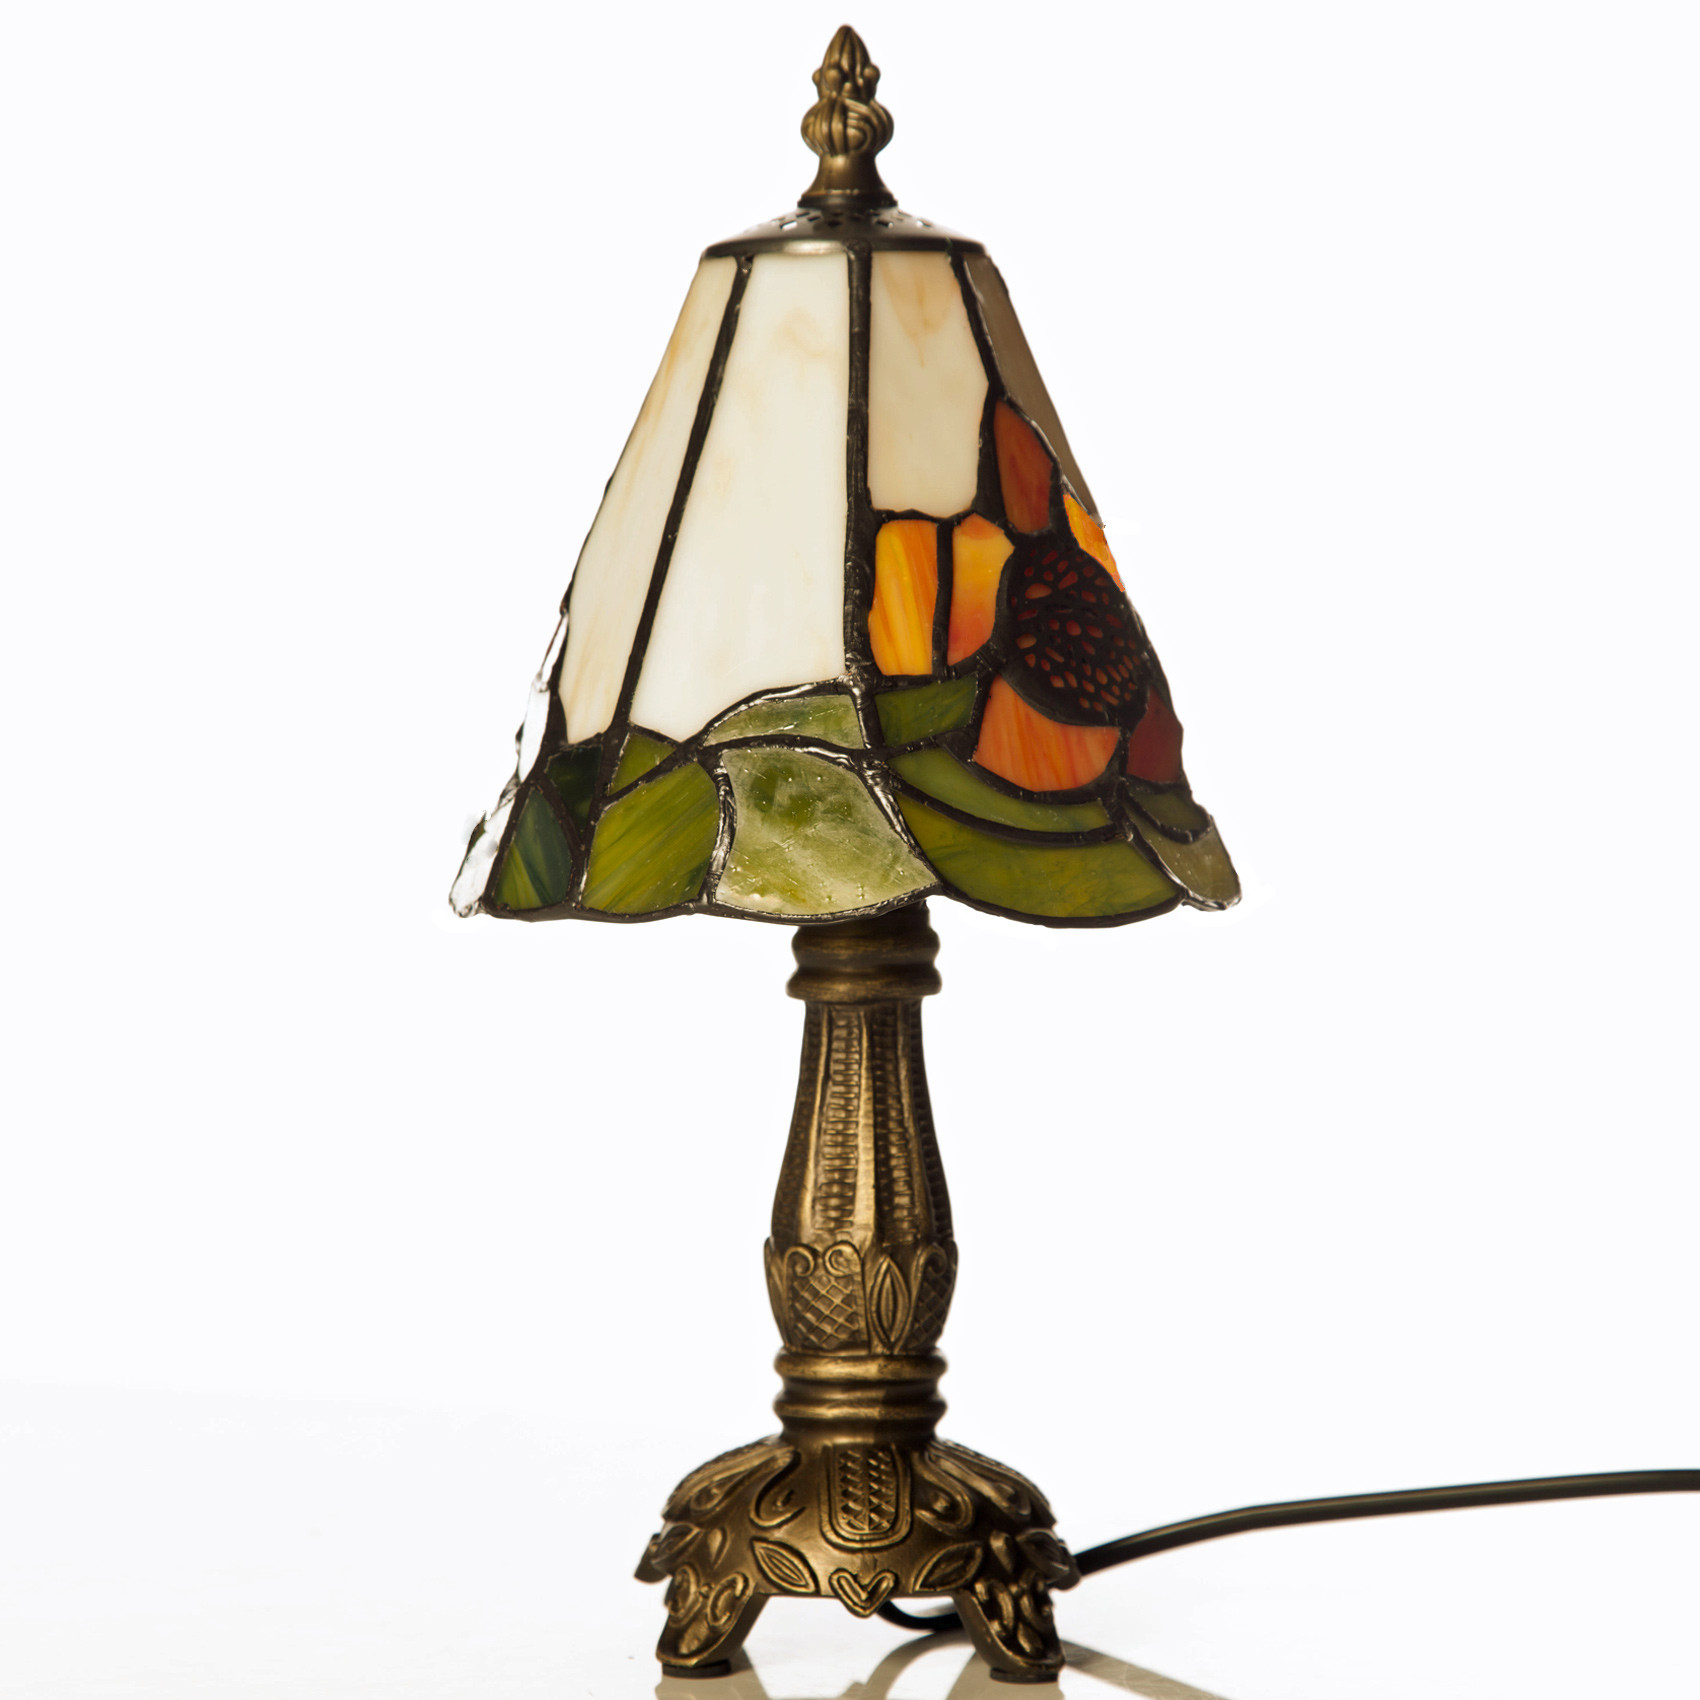 Best ideas about Small Desk Lamps . Save or Pin Small desk lamp discount tiffany table lamps small Now.